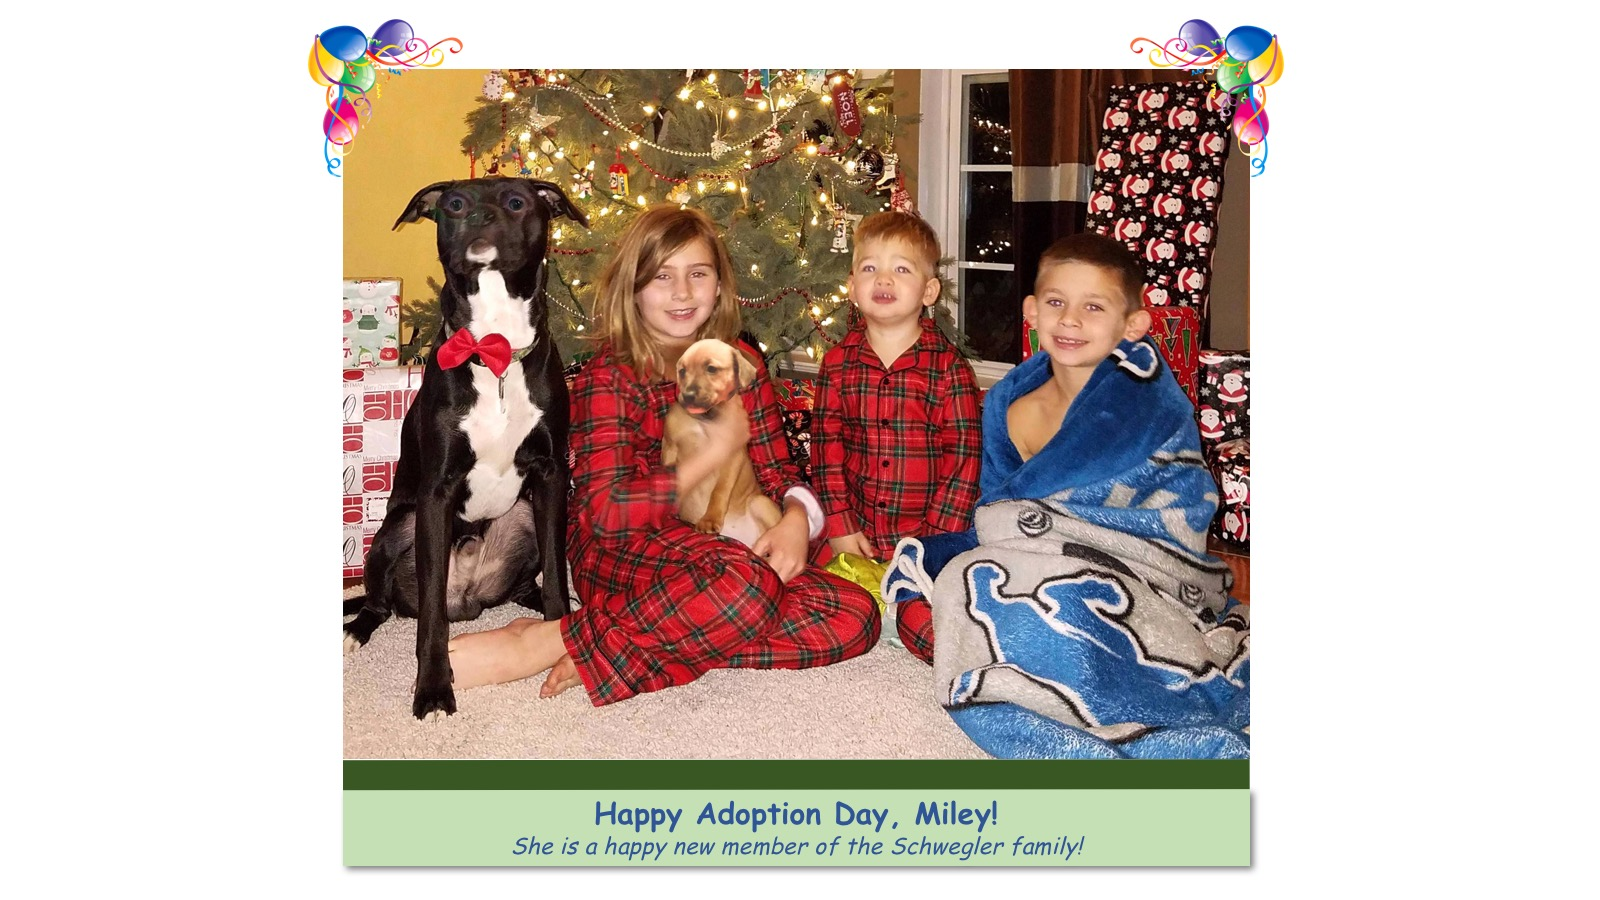 Miley_Adoption_photo.jpg